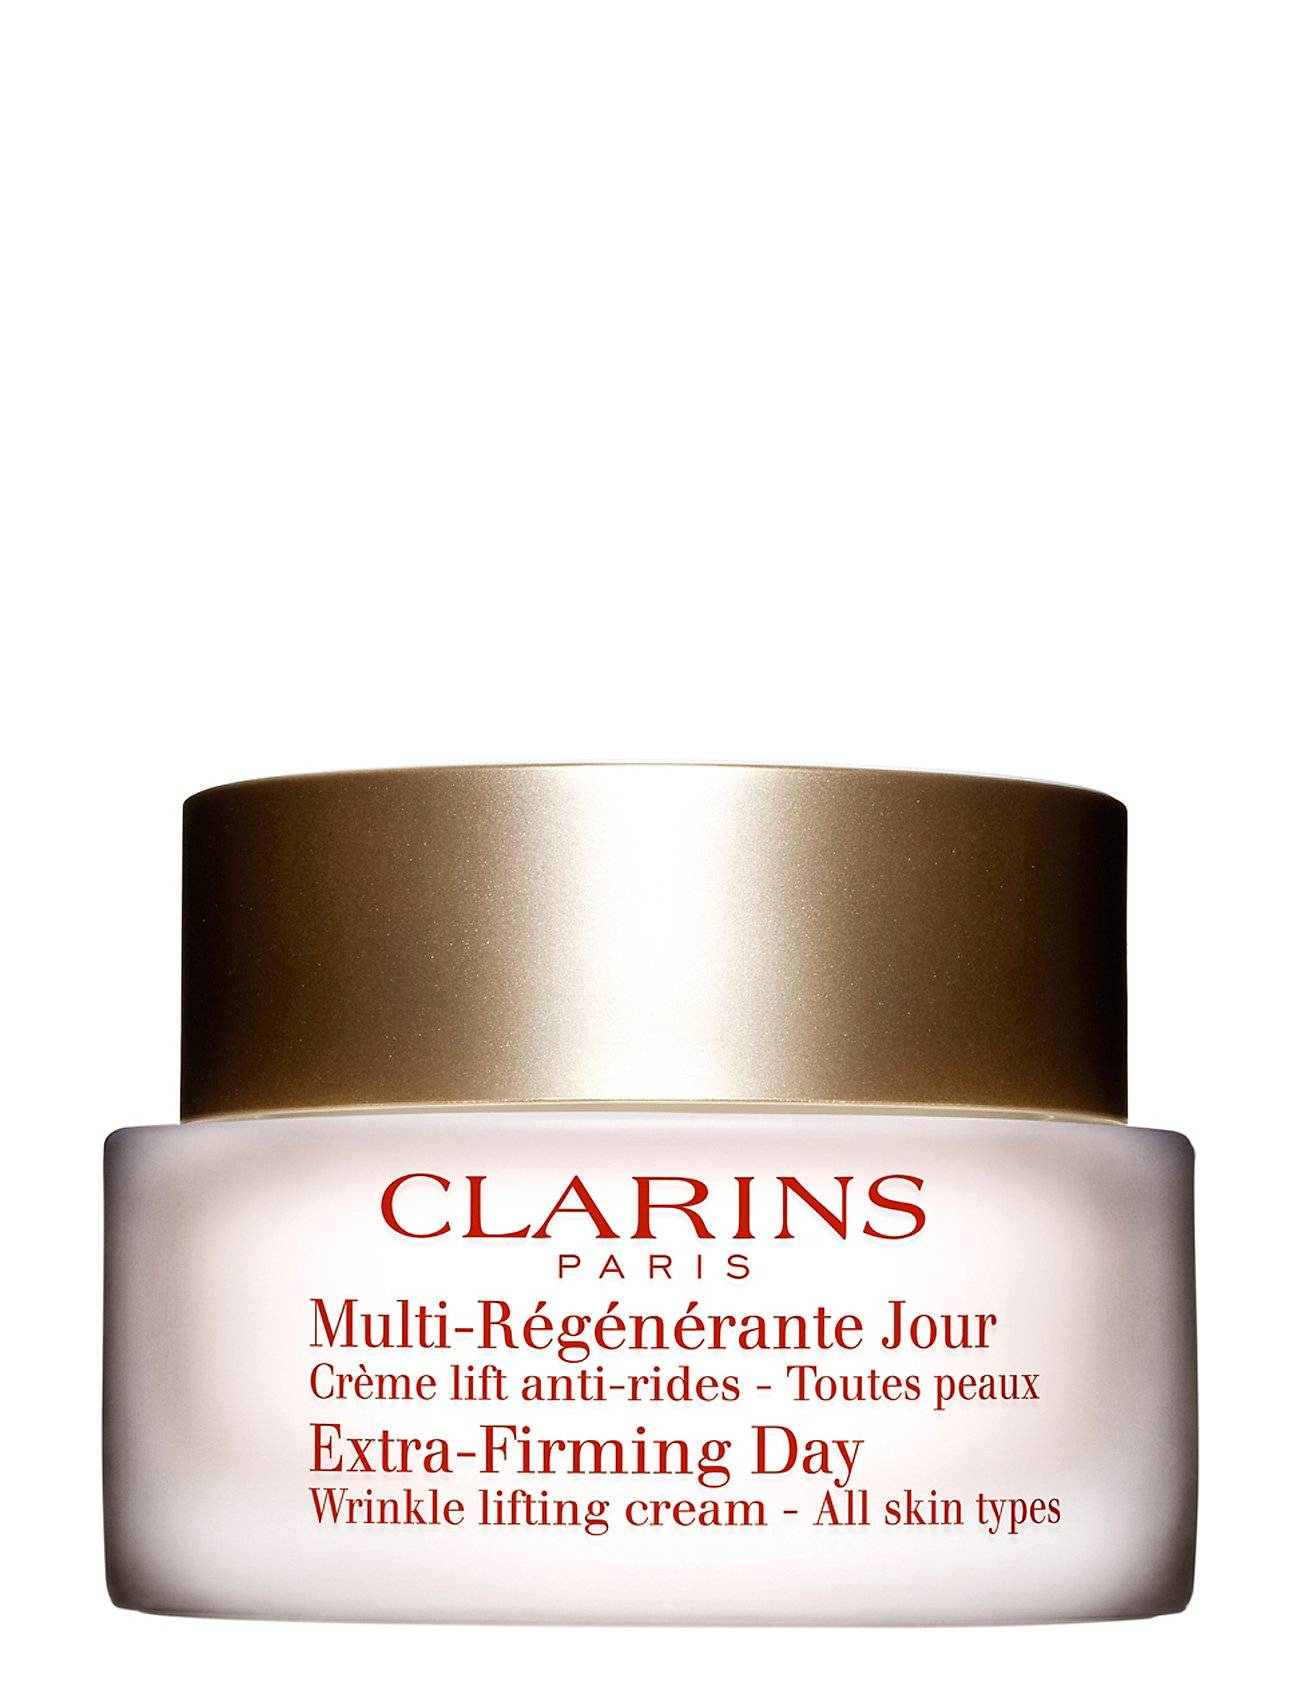 Clarins Extra-Firming Day Cream Nor